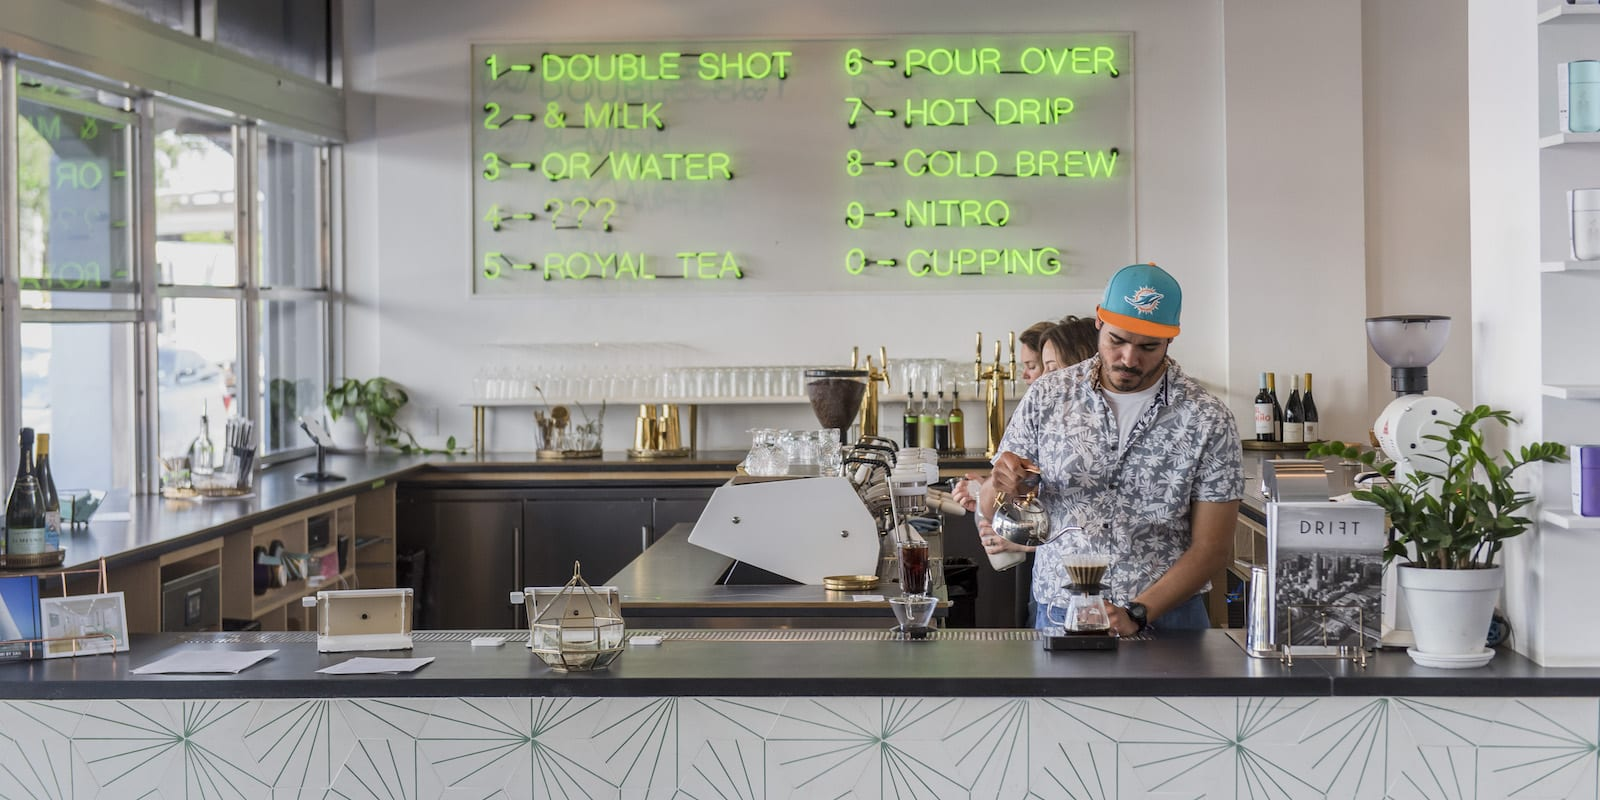 10 All-Day Cafes